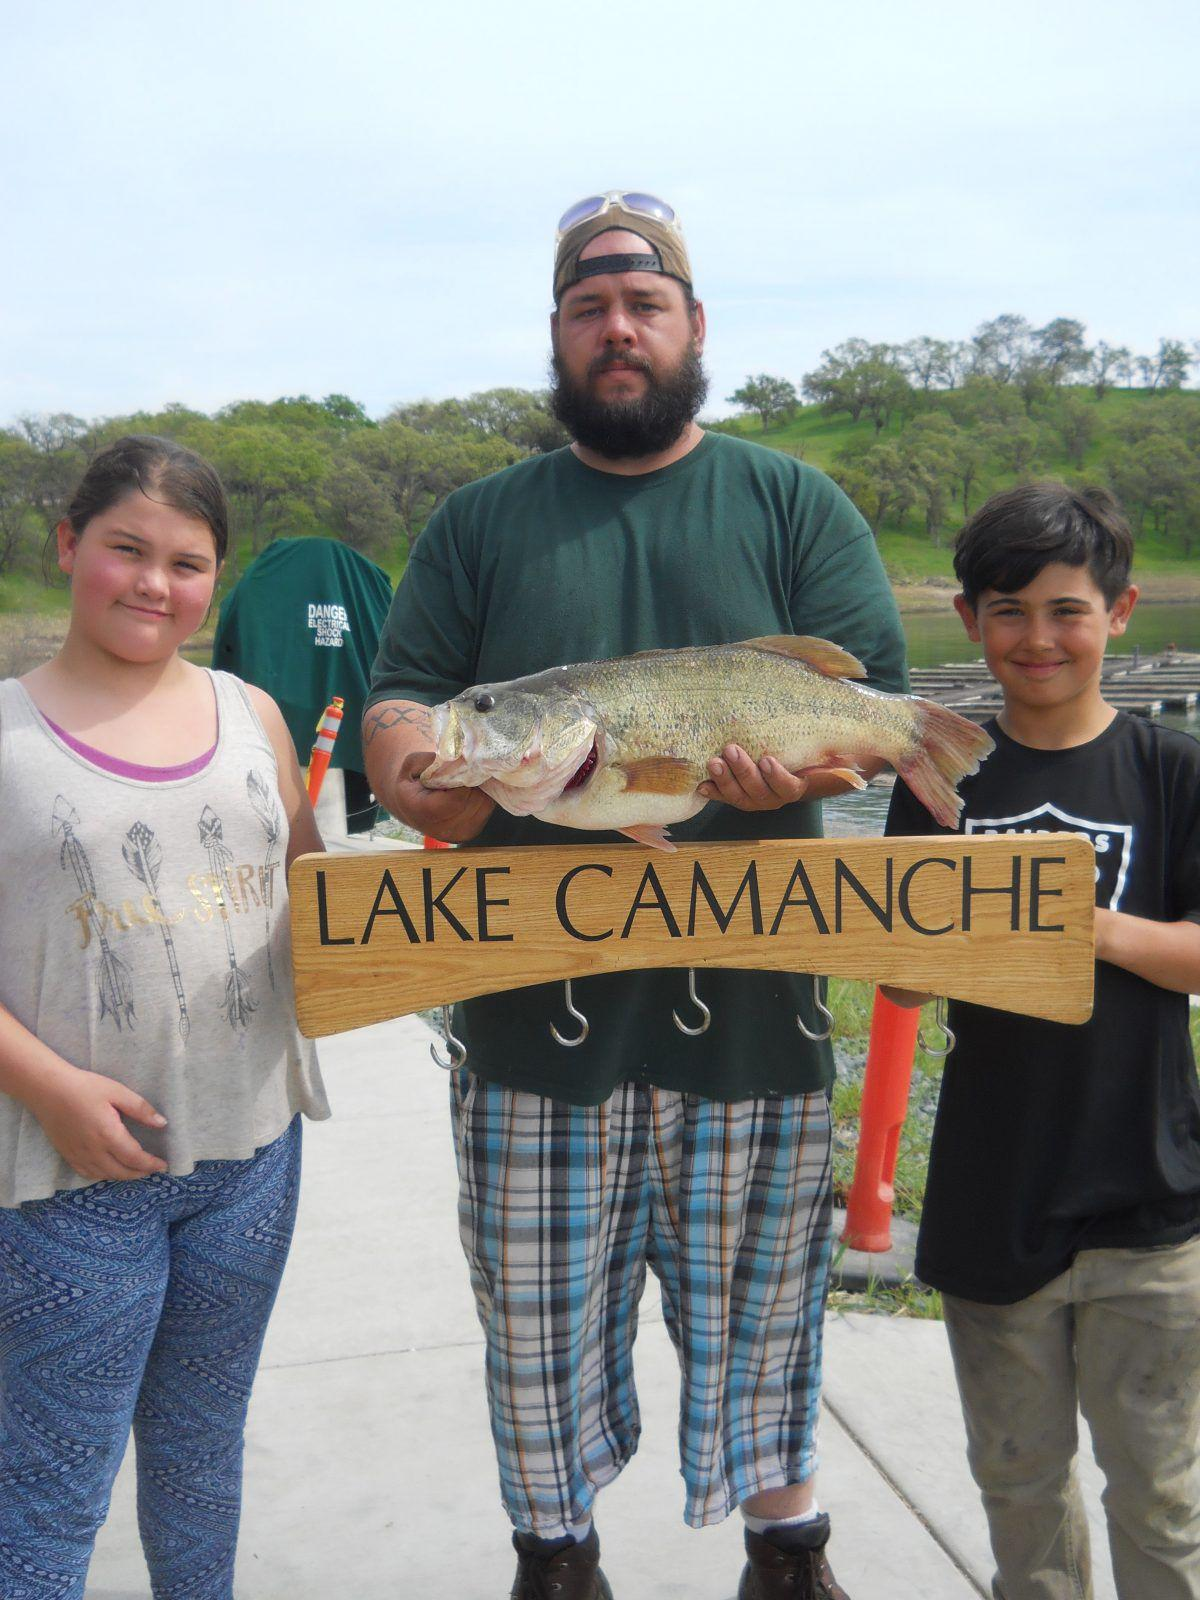 Lake camanche fishing report in the game for Lake camanche fishing